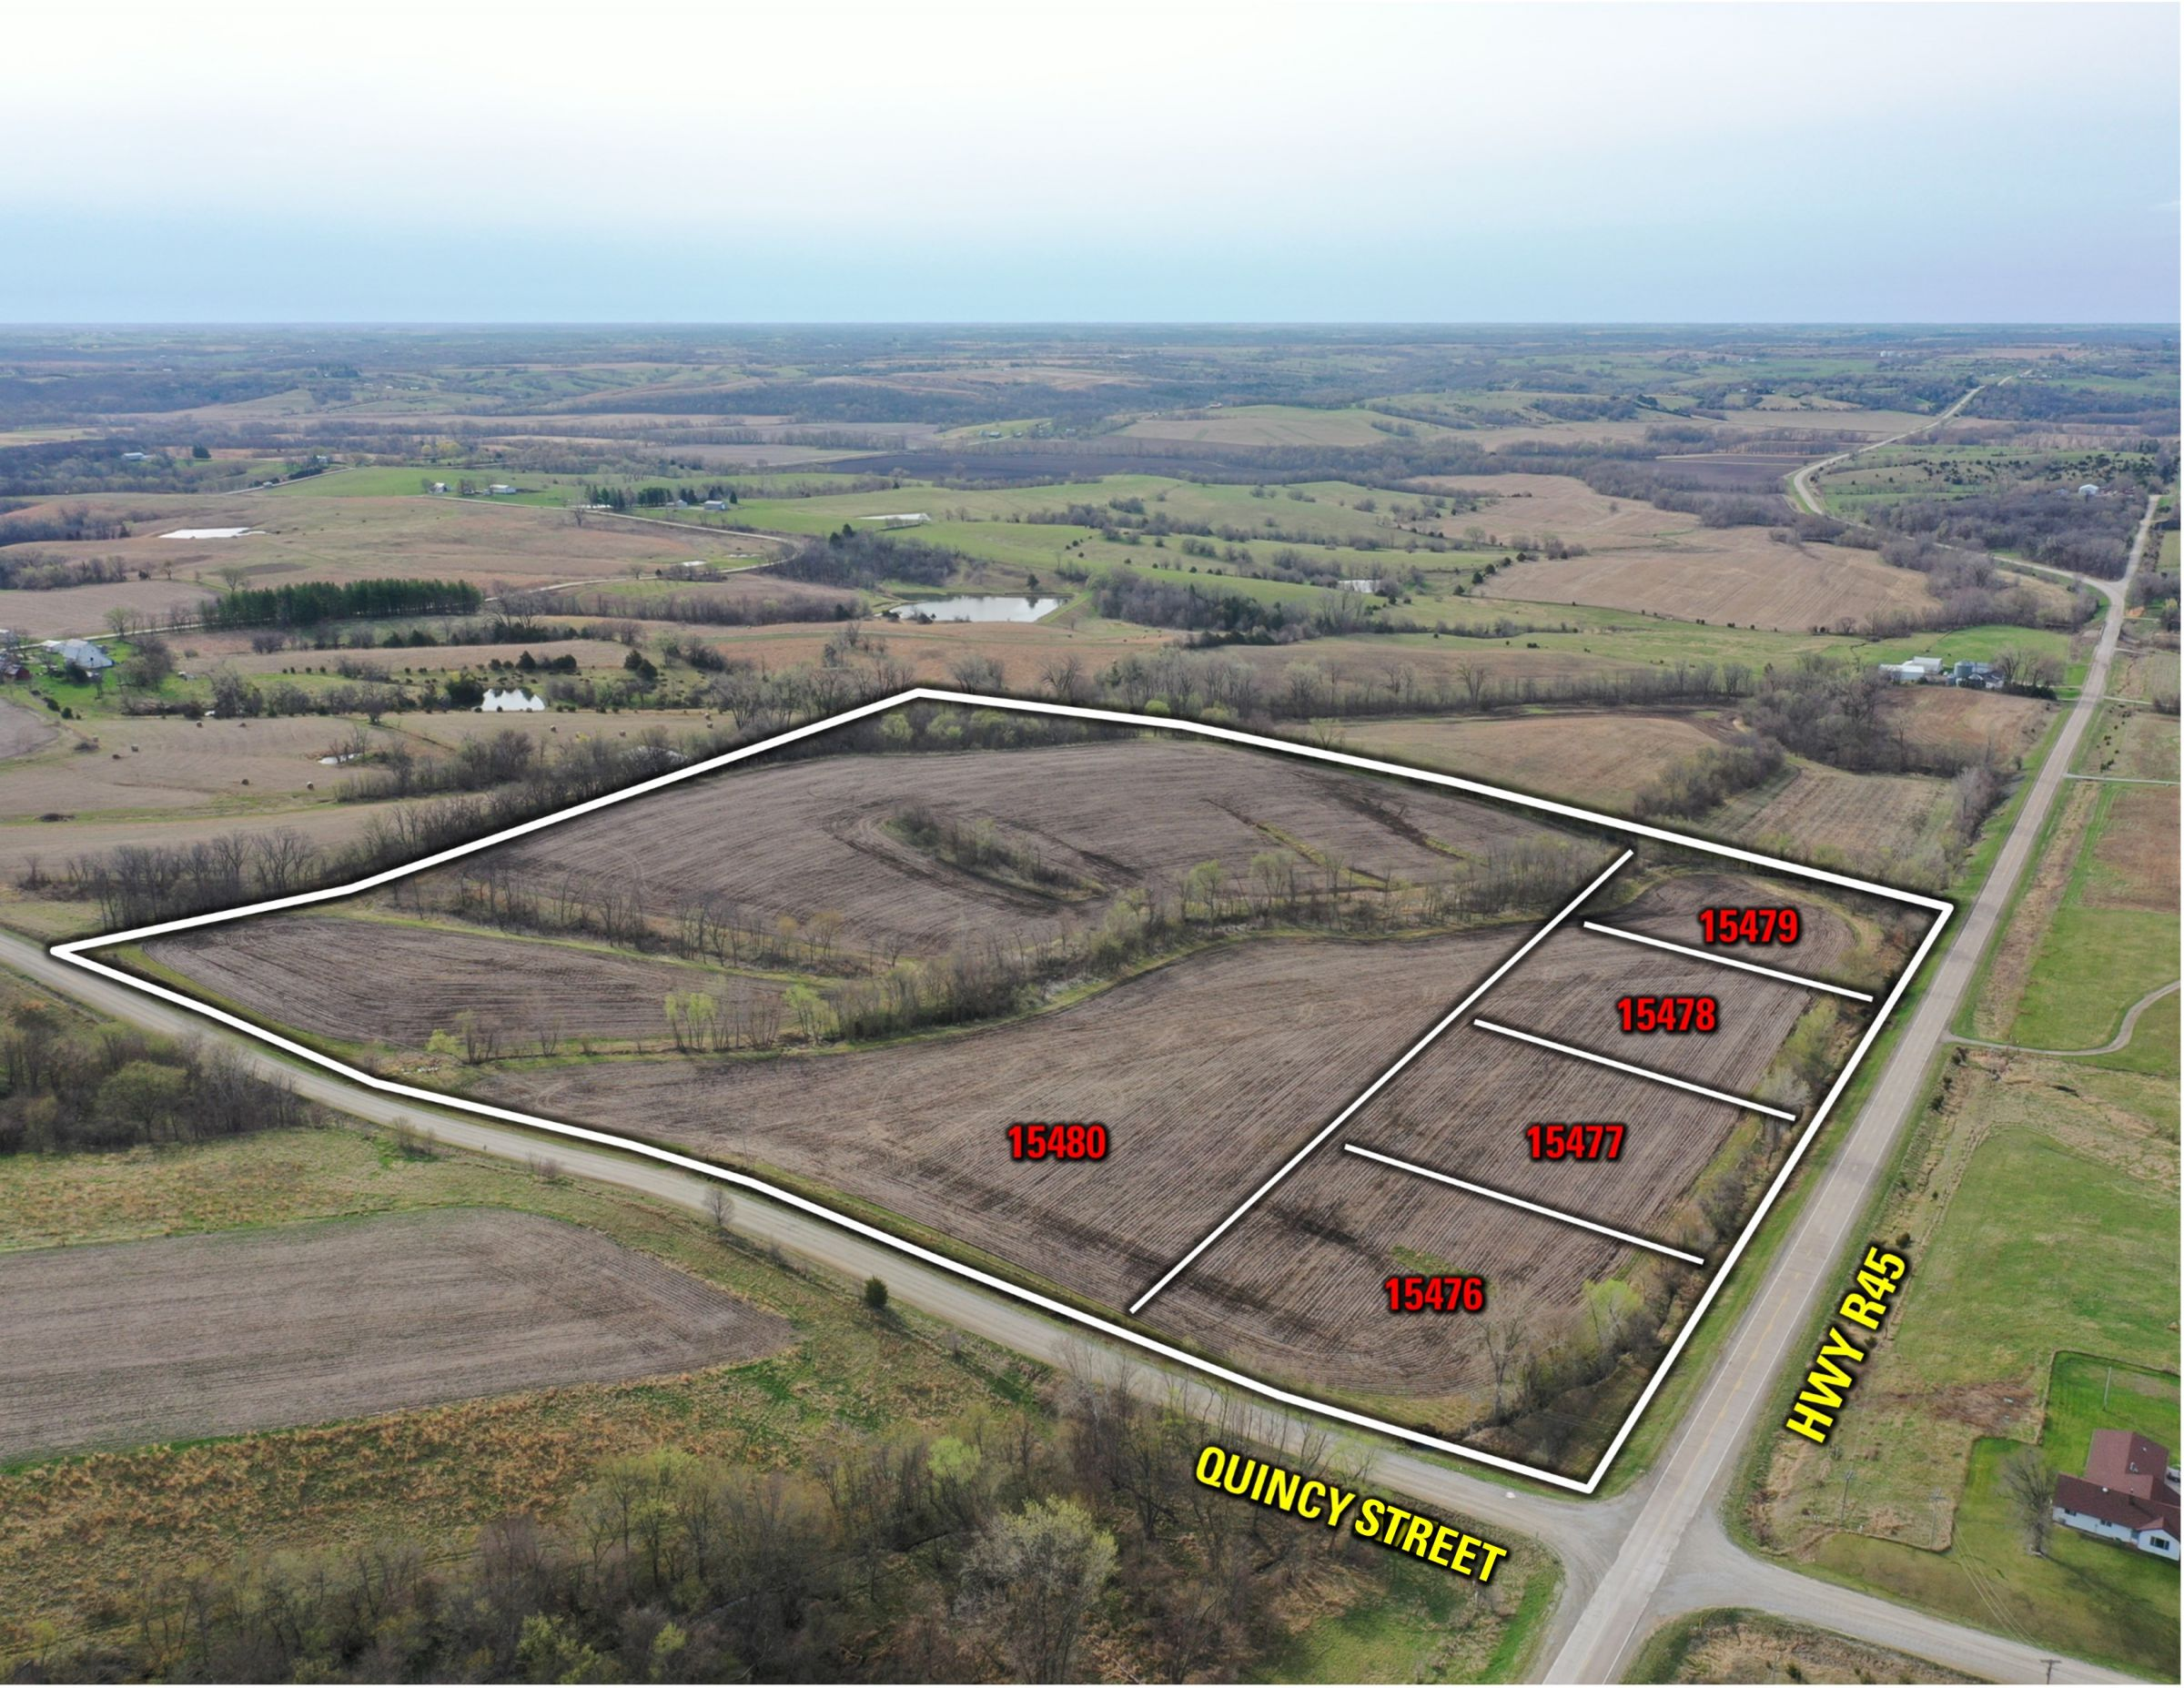 land-warren-county-iowa-3-acres-listing-number-15477-1-2021-04-23-143340.jpg